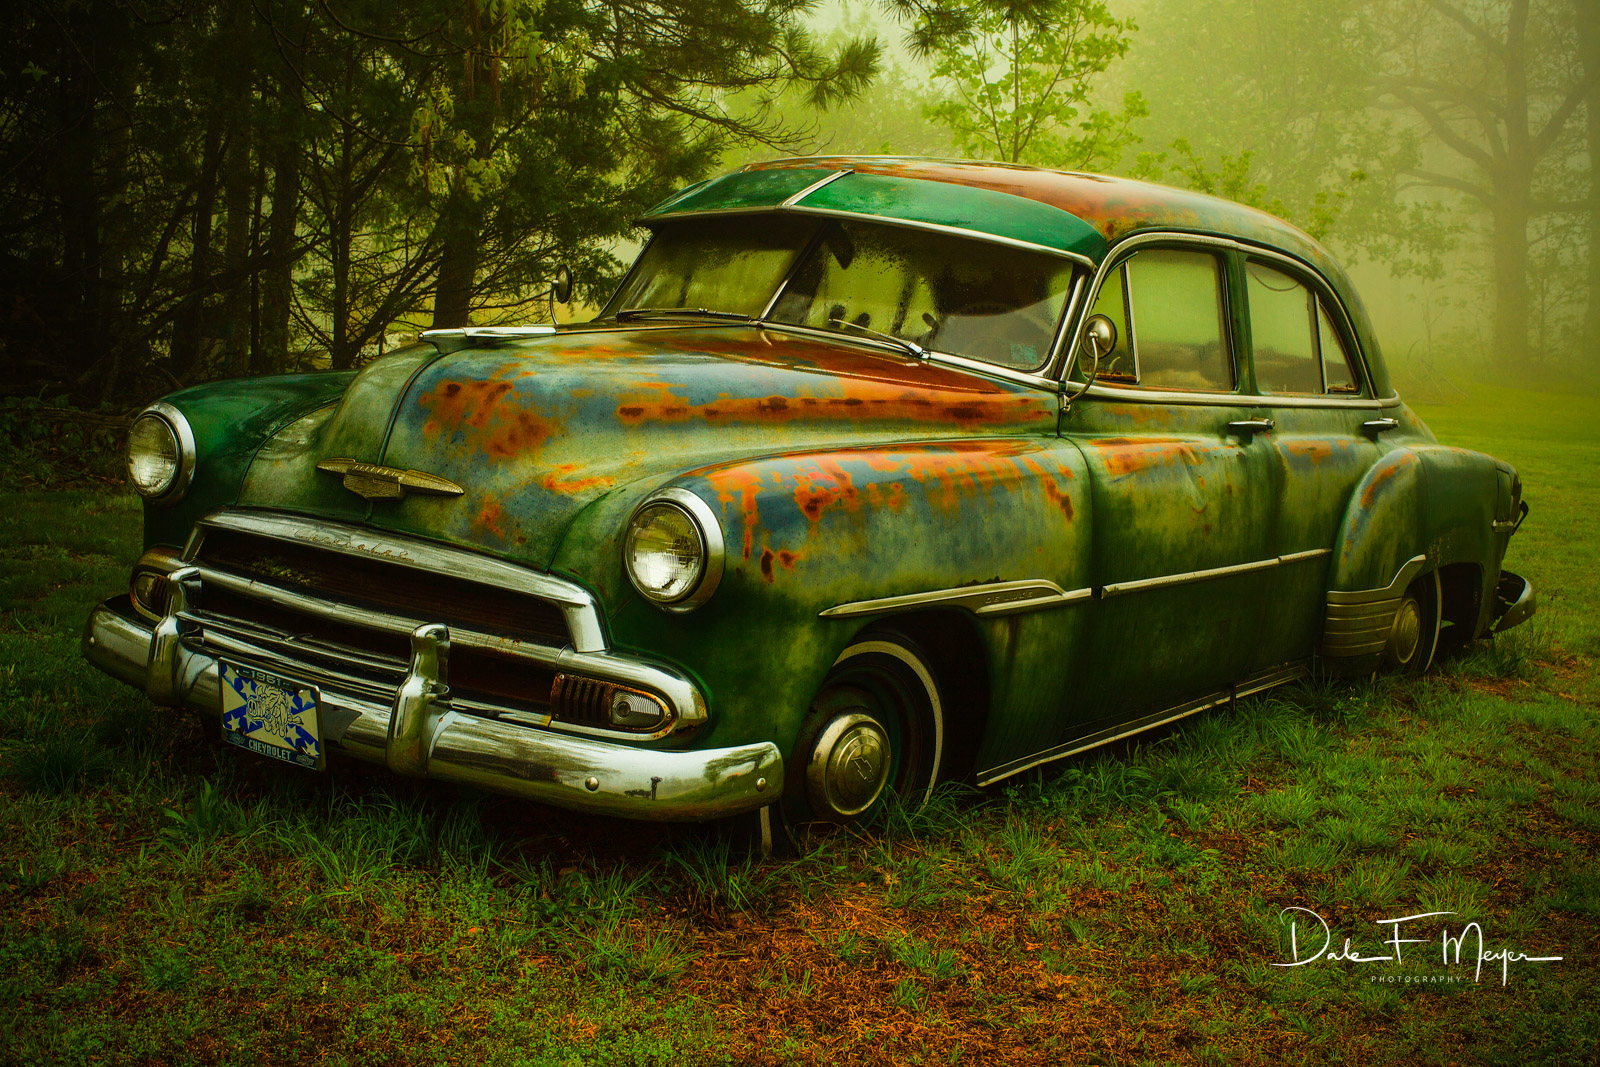 1951 Chevrolet Sedan, fog, old car, rain, time gone by gallerie, photo